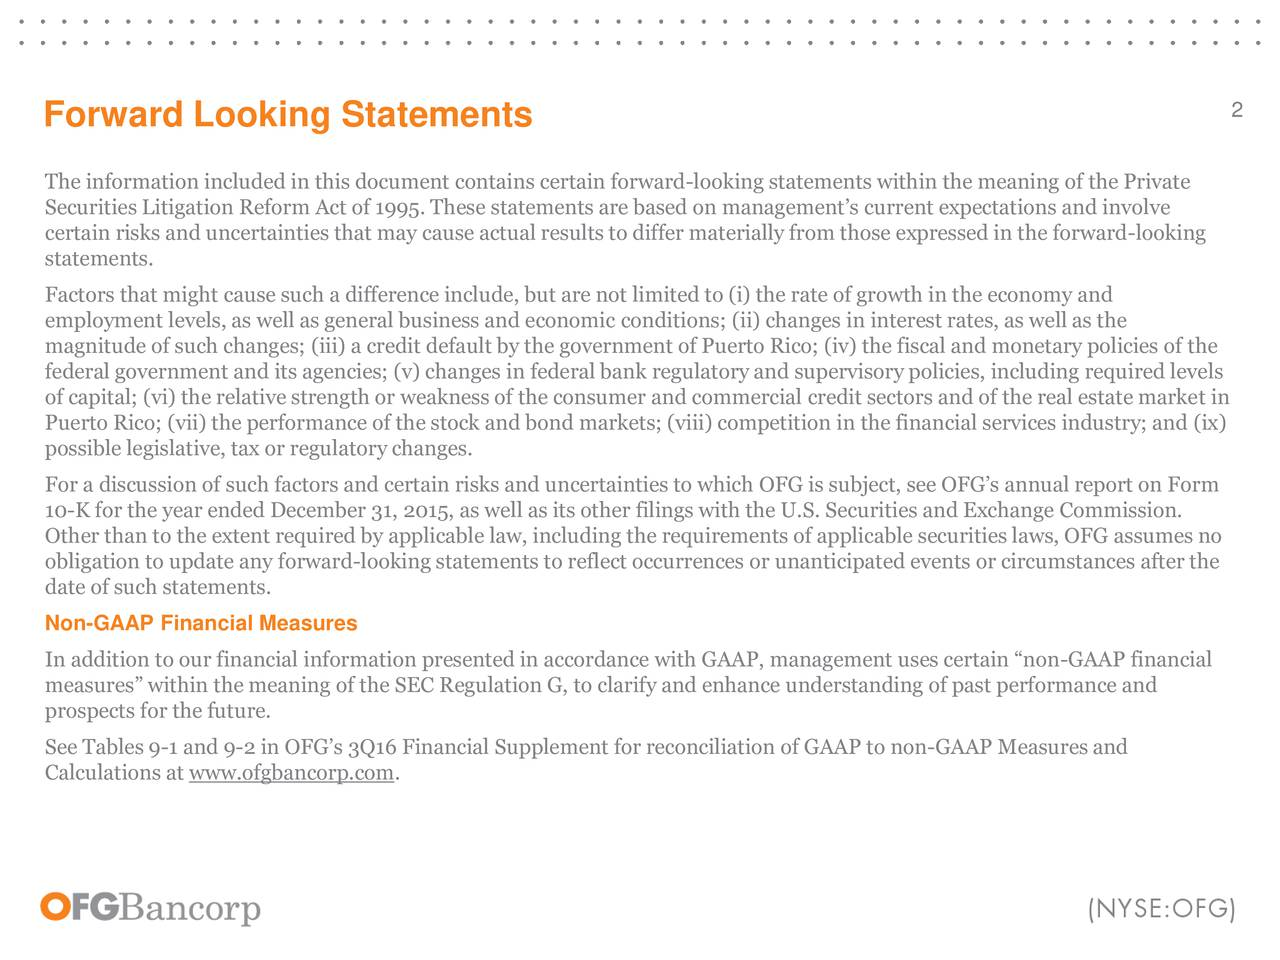 Forward Looking Statements The information included in this document contains certain forward-looking statements within the meaning of the Private Securities Litigation Reform Act of 1995. These statements are based on managements current expectations and involve certain risks and uncertainties that may cause actual results to differ materially from those expressed in the forward-looking statements. Factors that might cause such a difference include, but are not limited to (i) the rate of growth in the economy and employment levels, as well as general business and economic conditions; (ii) changes in interest rates, as well as the magnitude of such changes; (iii) a credit default by the government of Puerto Rico; (iv) the fiscal and monetary policies of the federal government and its agencies; (v) changes in federal bank regulatory and supervisory policies, including required levels of capital; (vi) the relative strength or weakness of the consumer and commercial credit sectors and of the real estate market in Puerto Rico; (vii) the performance of the stock and bond markets; (viii) competition in the financial services industry; and (ix) possible legislative, tax or regulatory changes. For a discussion of such factors and certain risks and uncertainties to which OFG is subject, see OFGs annual report on Form 10-K for the year ended December 31, 2015, as well as its other filings with the U.S. Securities and Exchange Commission. Other than to the extent required by applicable law, including the requirements of applicable securities laws, OFG assumes no obligation to update any forward-looking statements to reflect occurrences or unanticipated events or circumstances after the date of such statements. Non-GAAP Financial Measures In addition to our financial information presented in accordance with GAAP, management uses certain non-GAAP financial measures within the meaning of the SEC Regulation G, to clarify and enhance understanding of past performance and prospects 